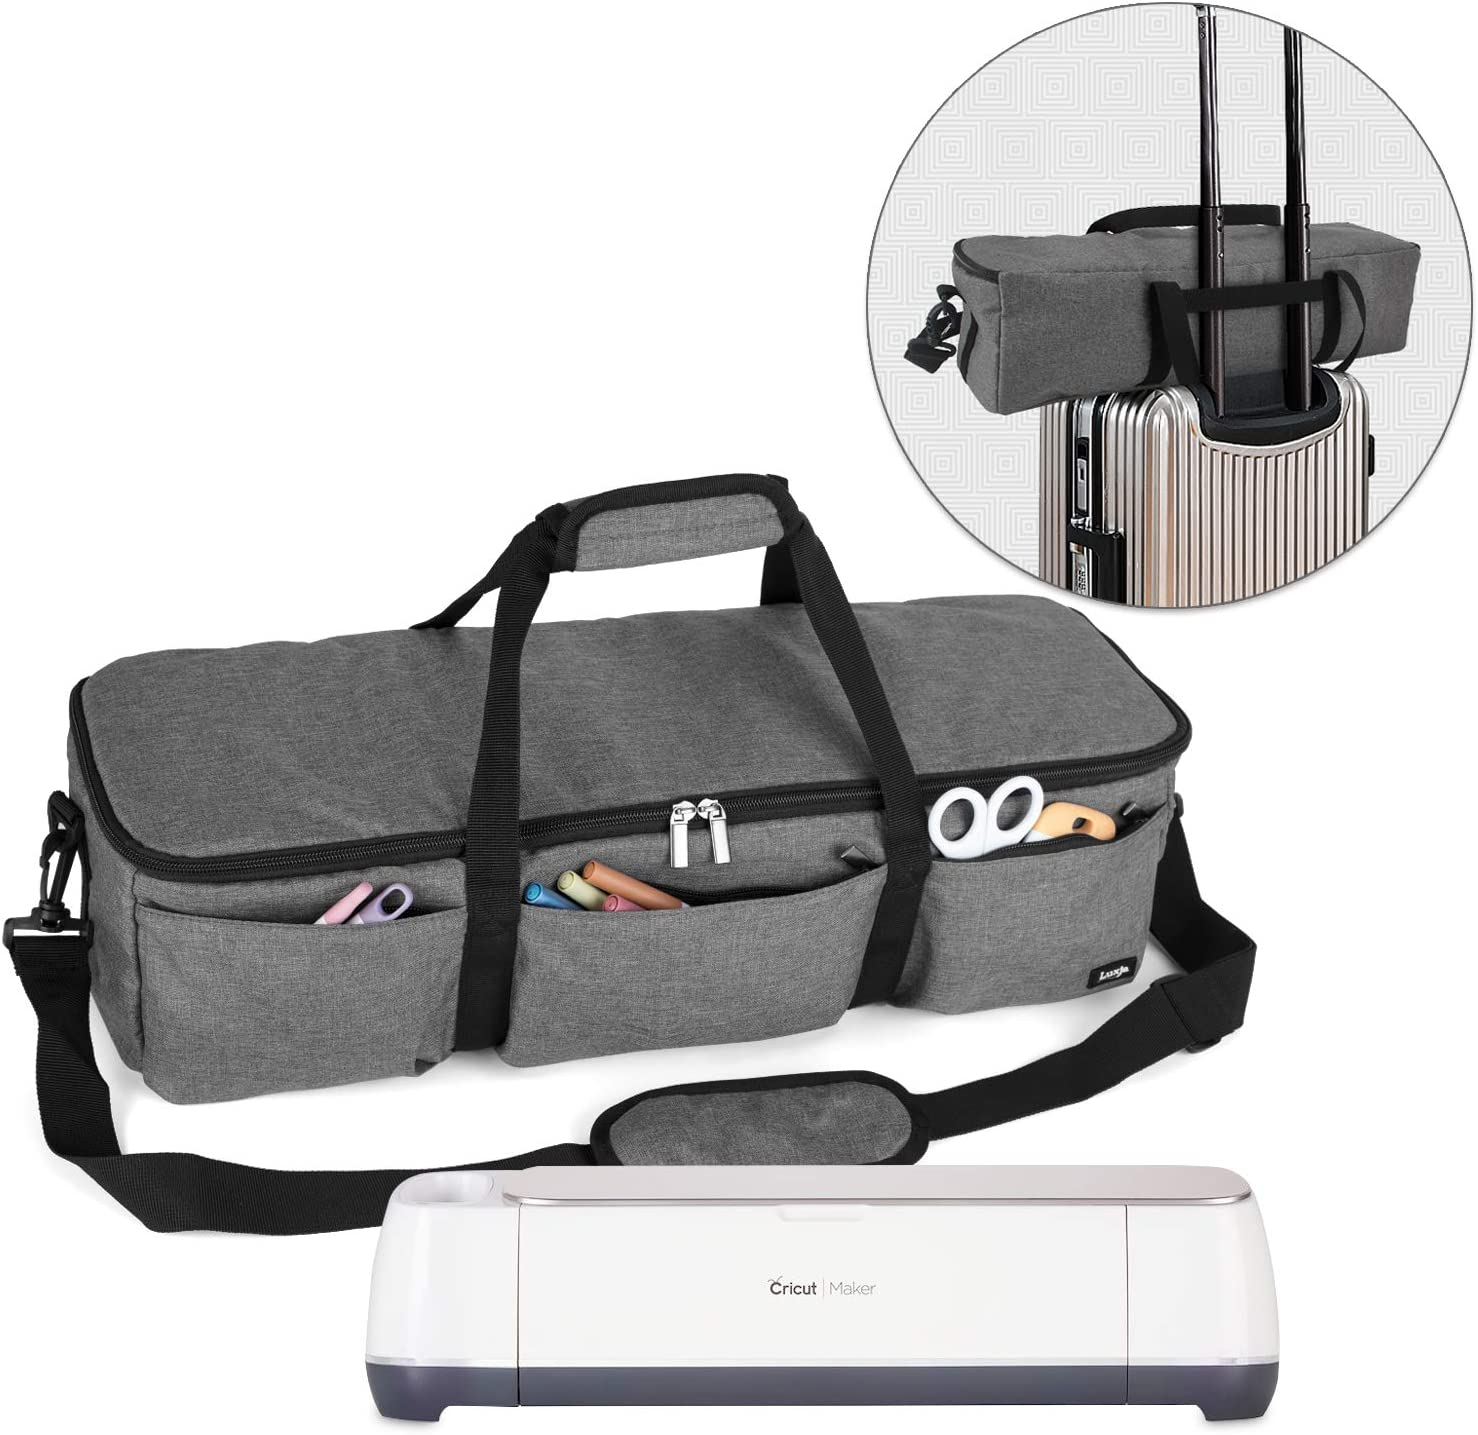 YELAIYEHAO Carrying Bag Compatible with Cricut Explore Air and Maker Waterproof